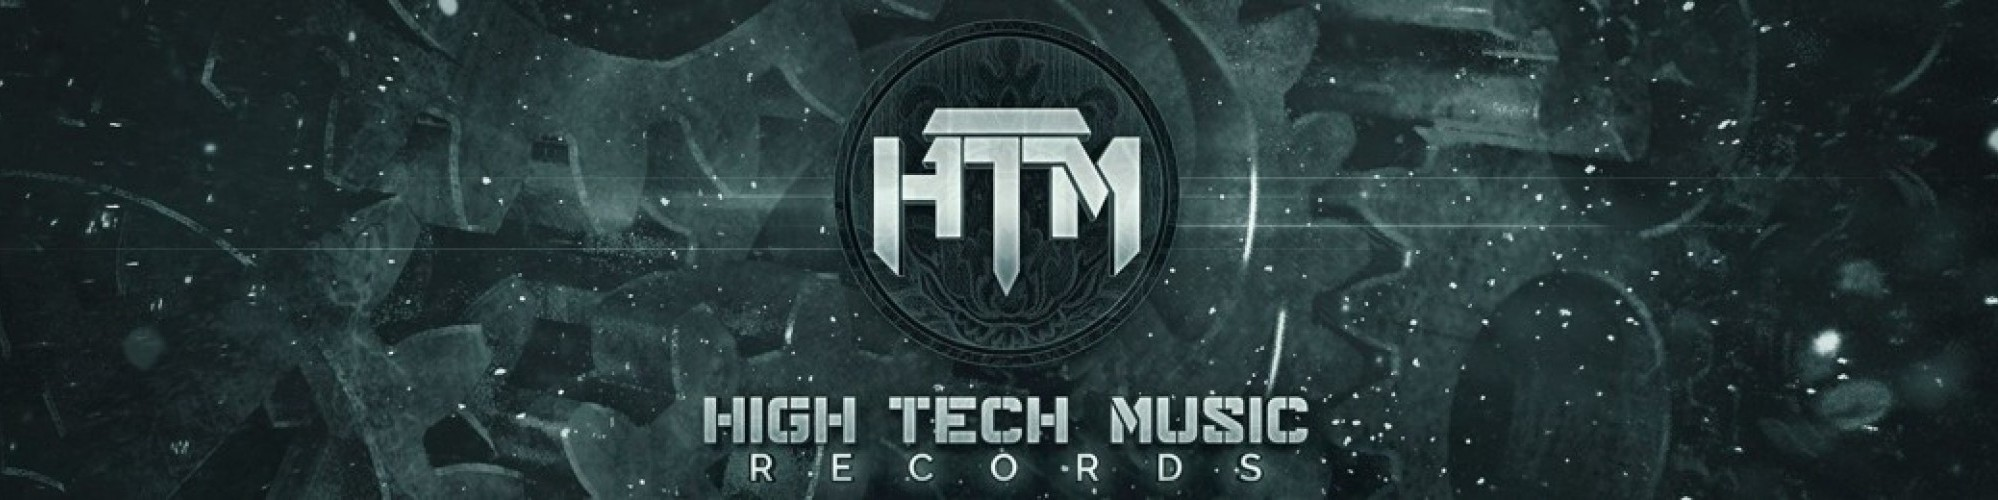 HTM Records